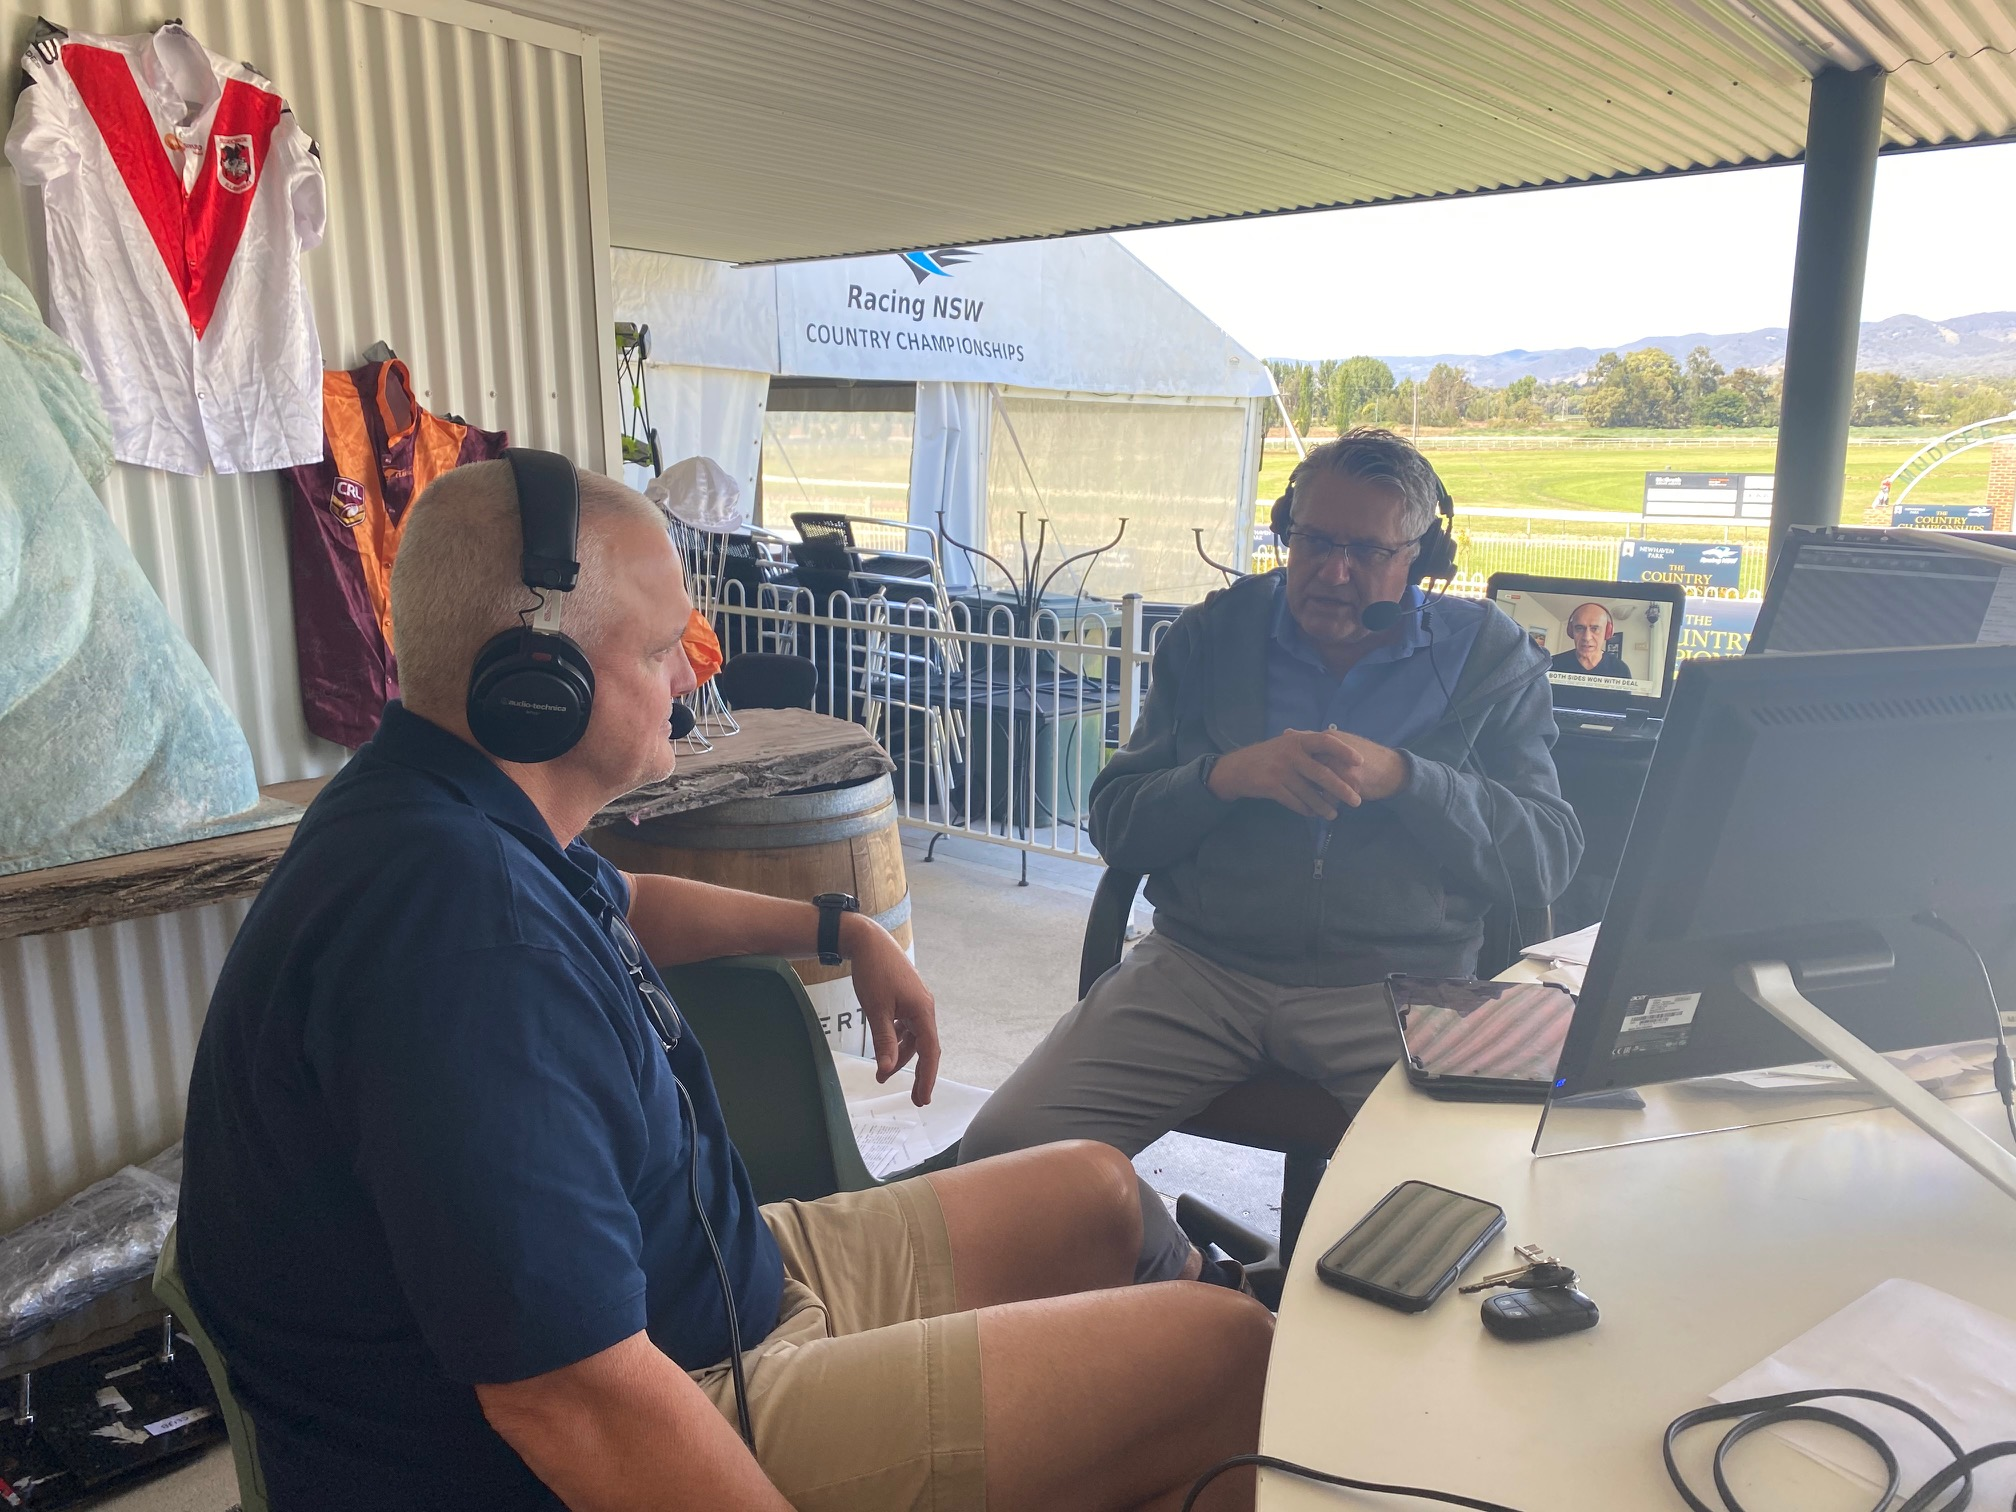 Ray Hadley broadcasts from Mudgee for Country Championships